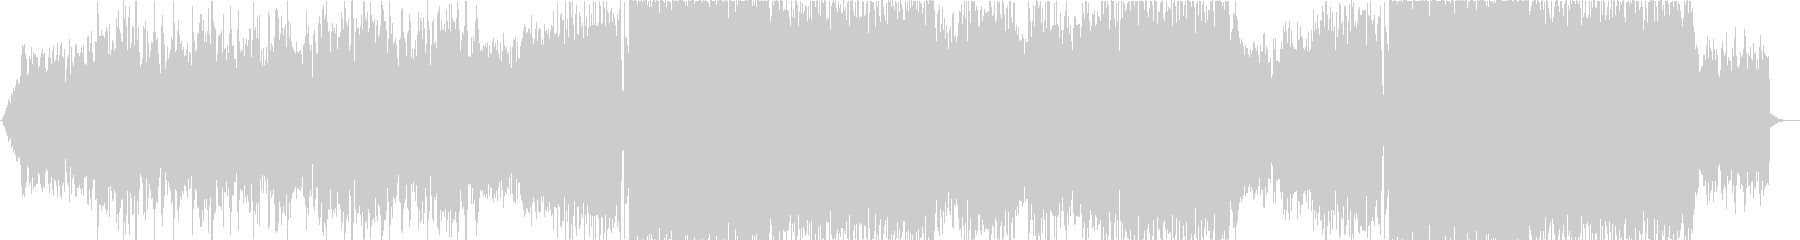 Asian EDM played by Niko's unreproduced waveform